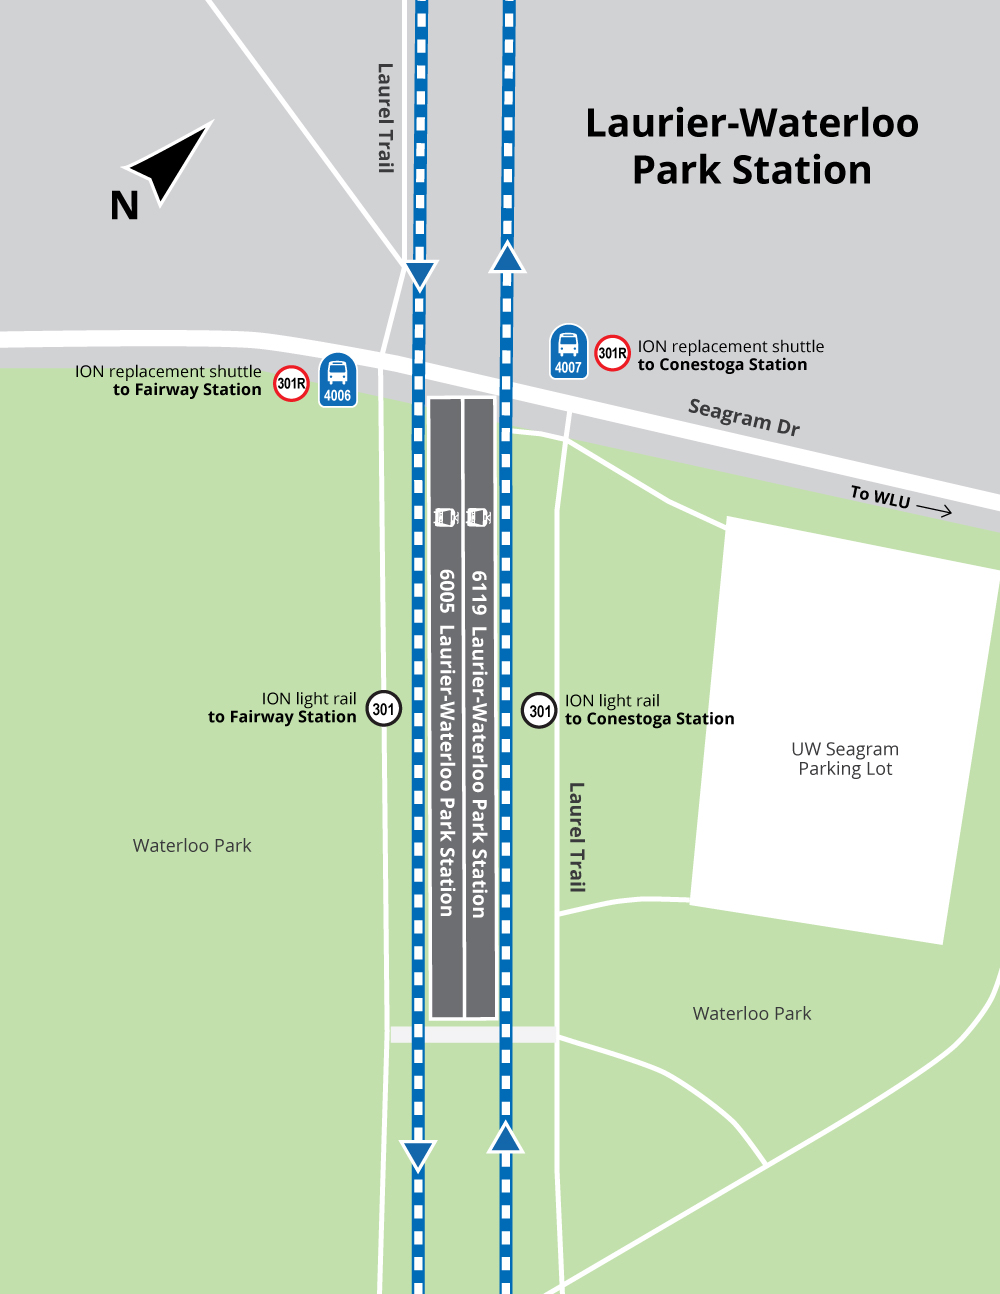 Map of trail connections at Laurier-Waterloo Park Station